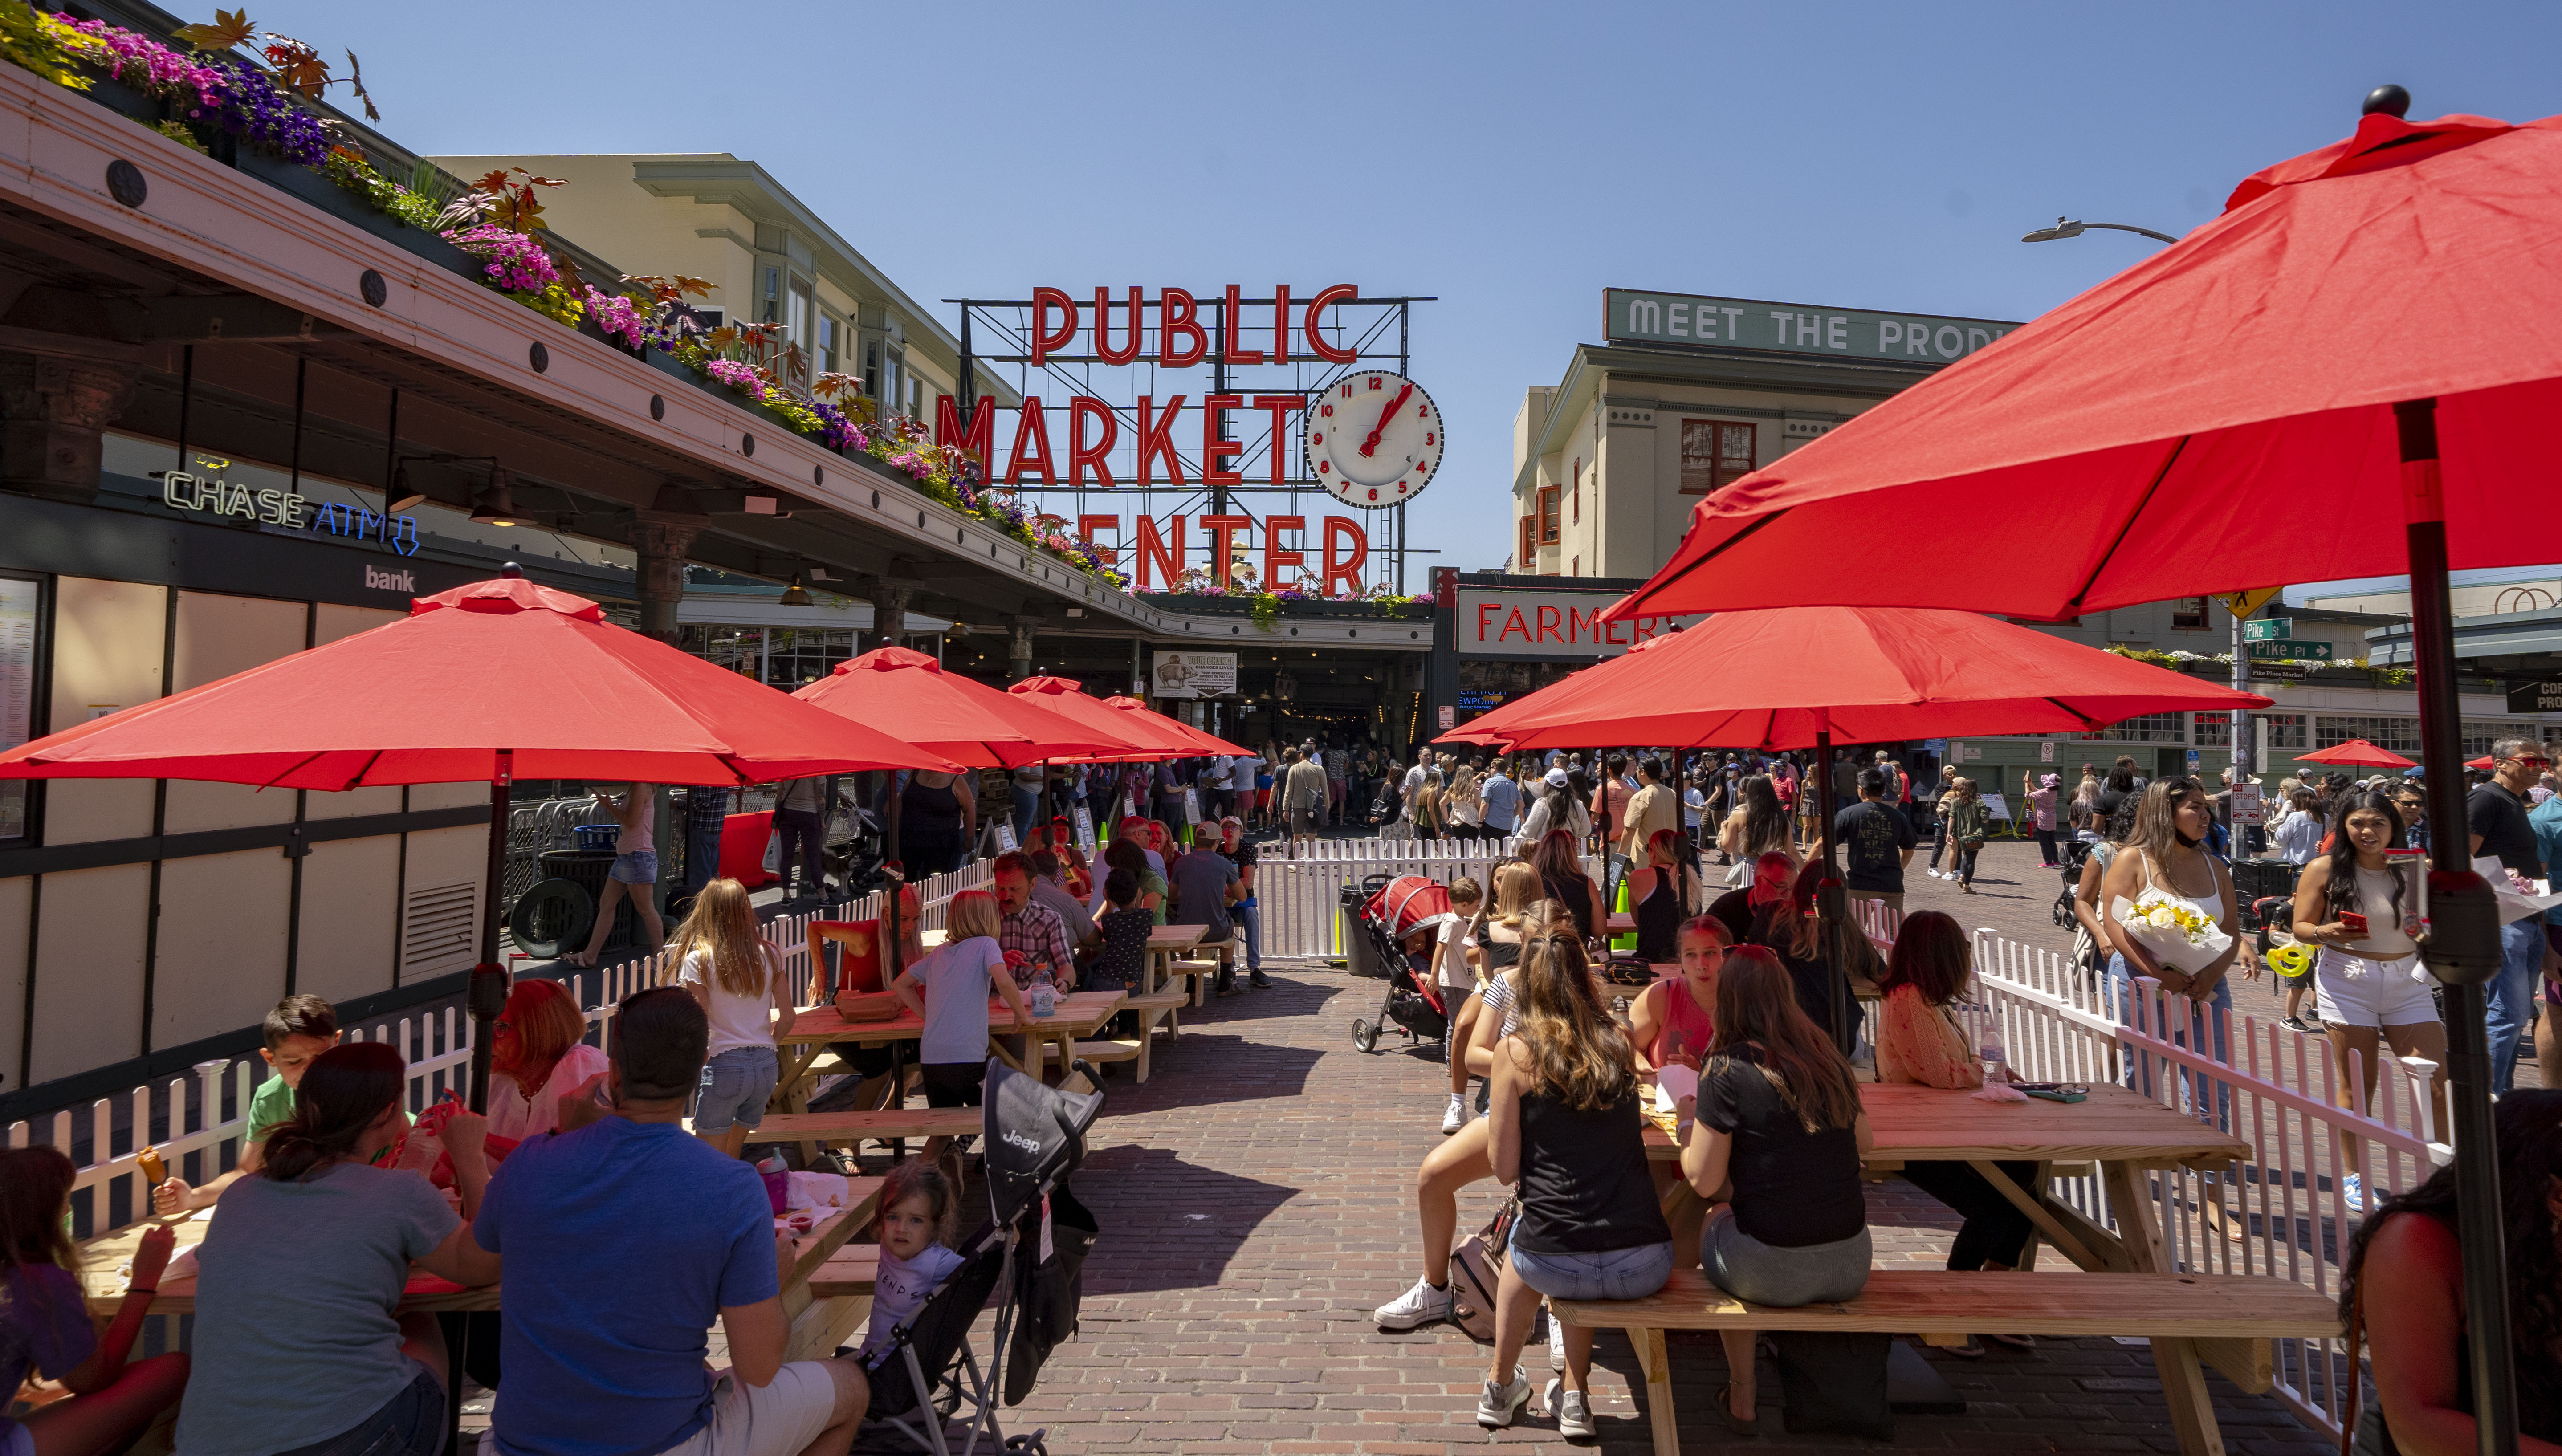 Red umbrellas cover picnic tables on the streets outside Pike Place Market, with the Market's famed clock and sign in the background.